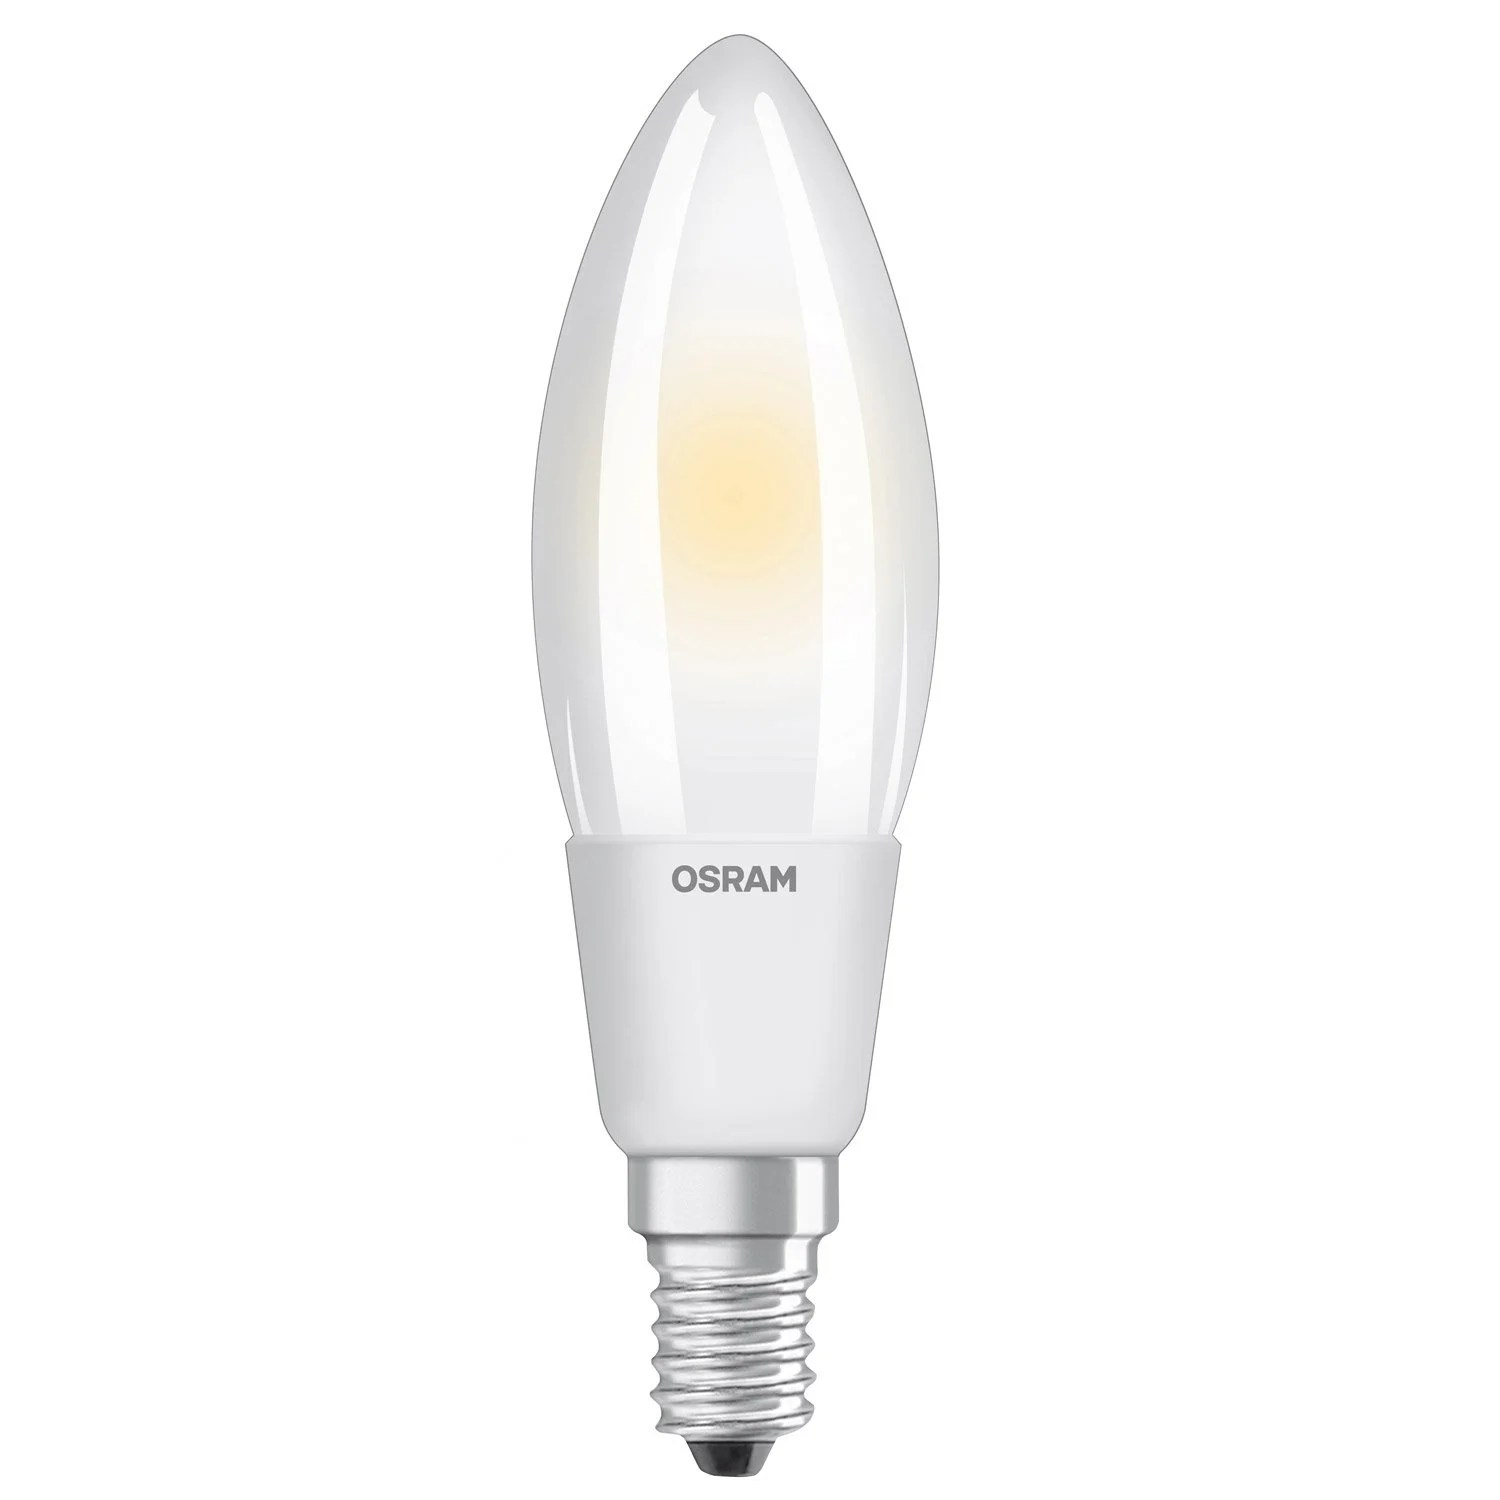 Ampoule Dimmable Ampoule Led Dimmable Flamme E14 5w 470lm équiv 40w